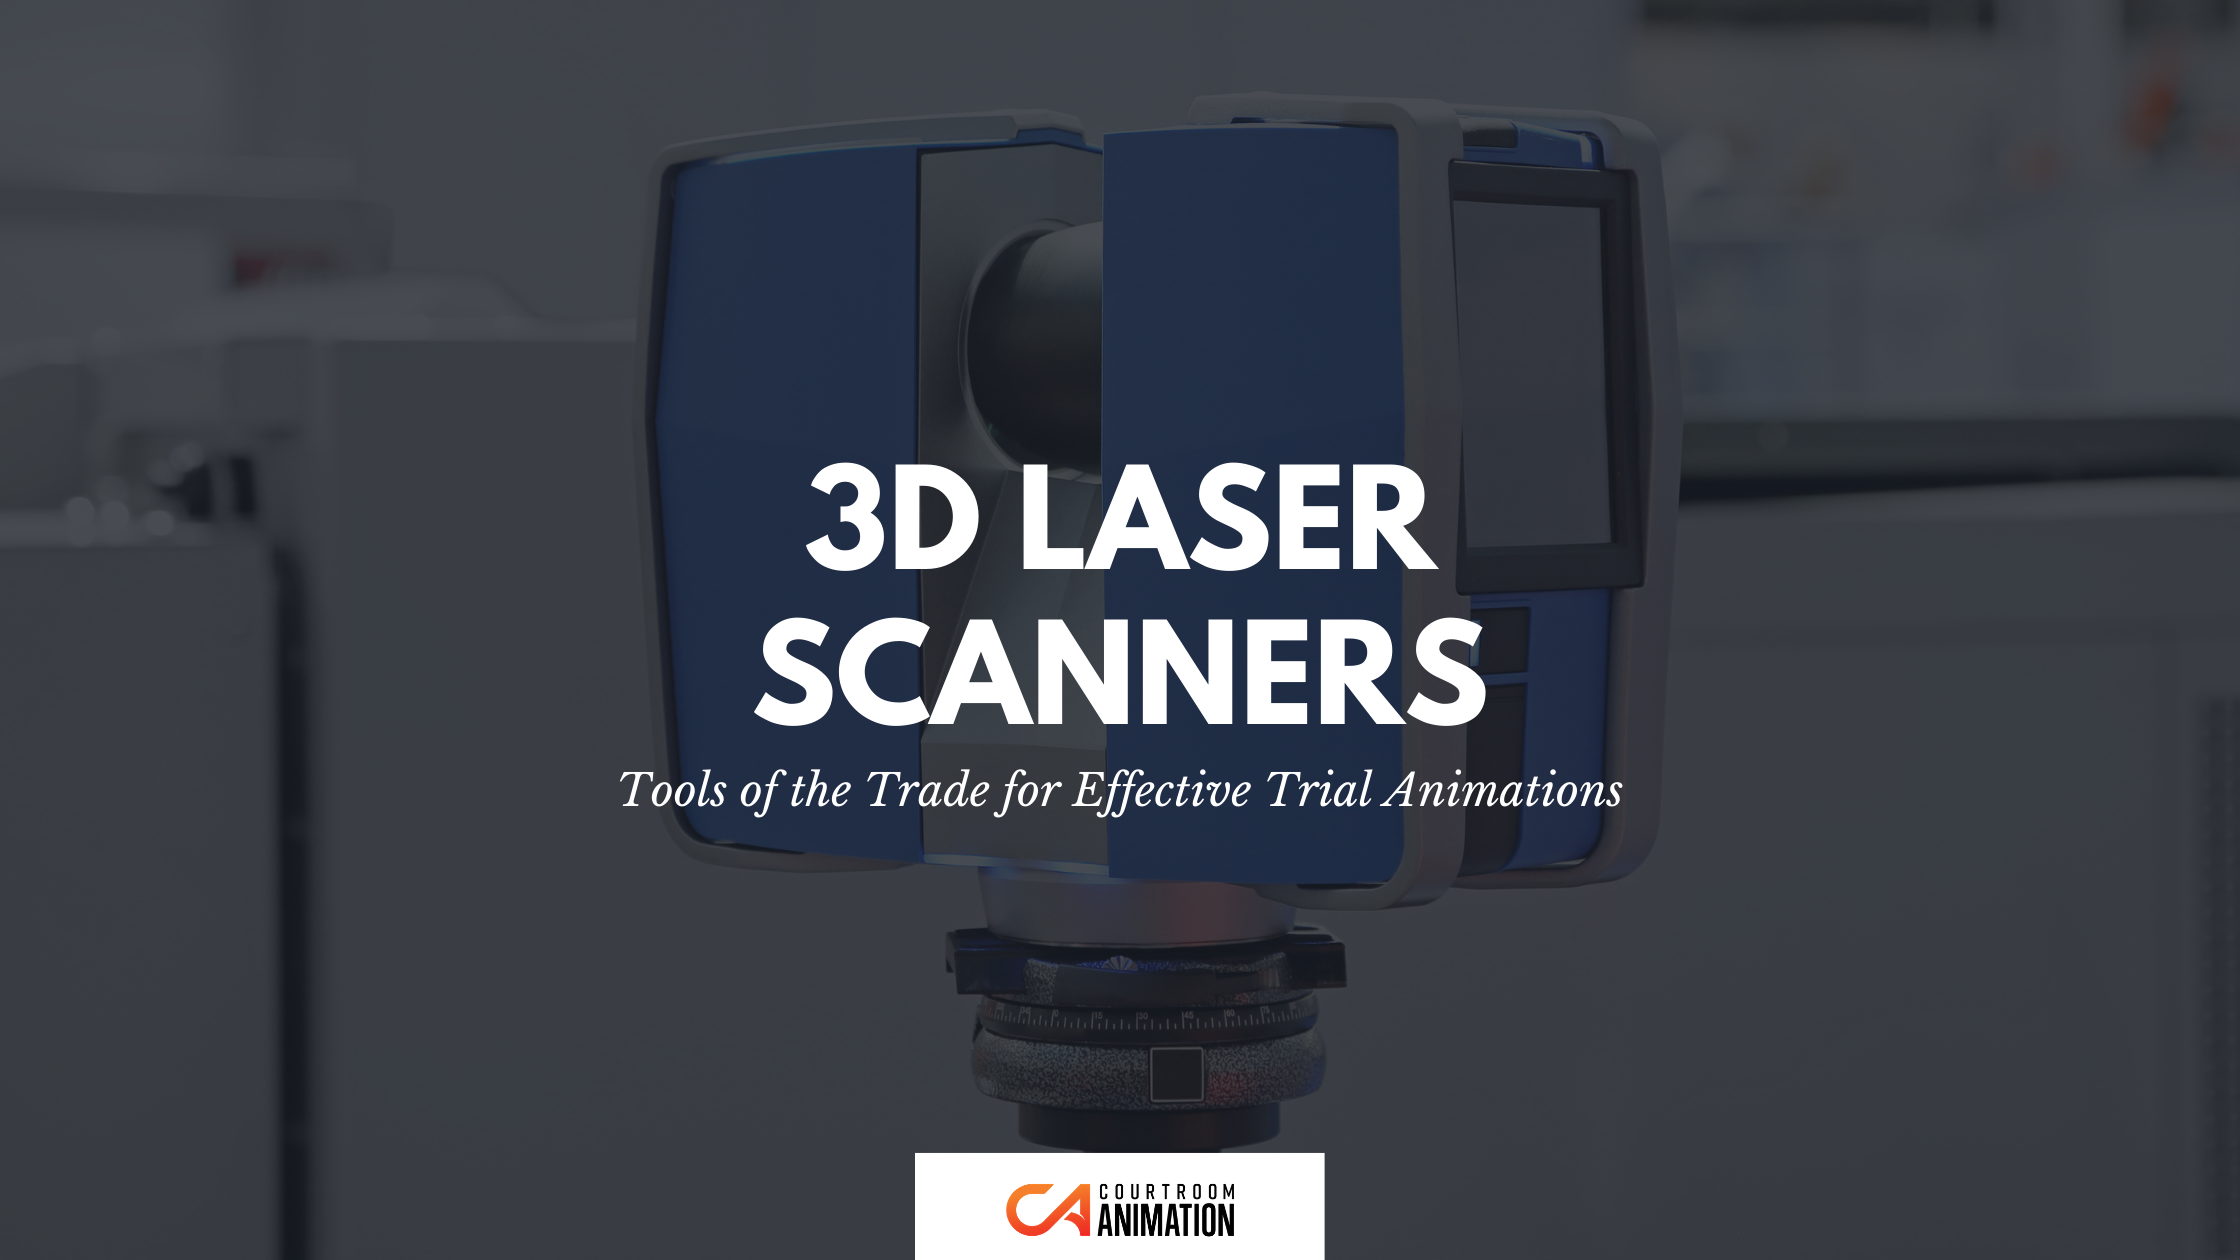 3D Laser Scanners by Courtroom Animation